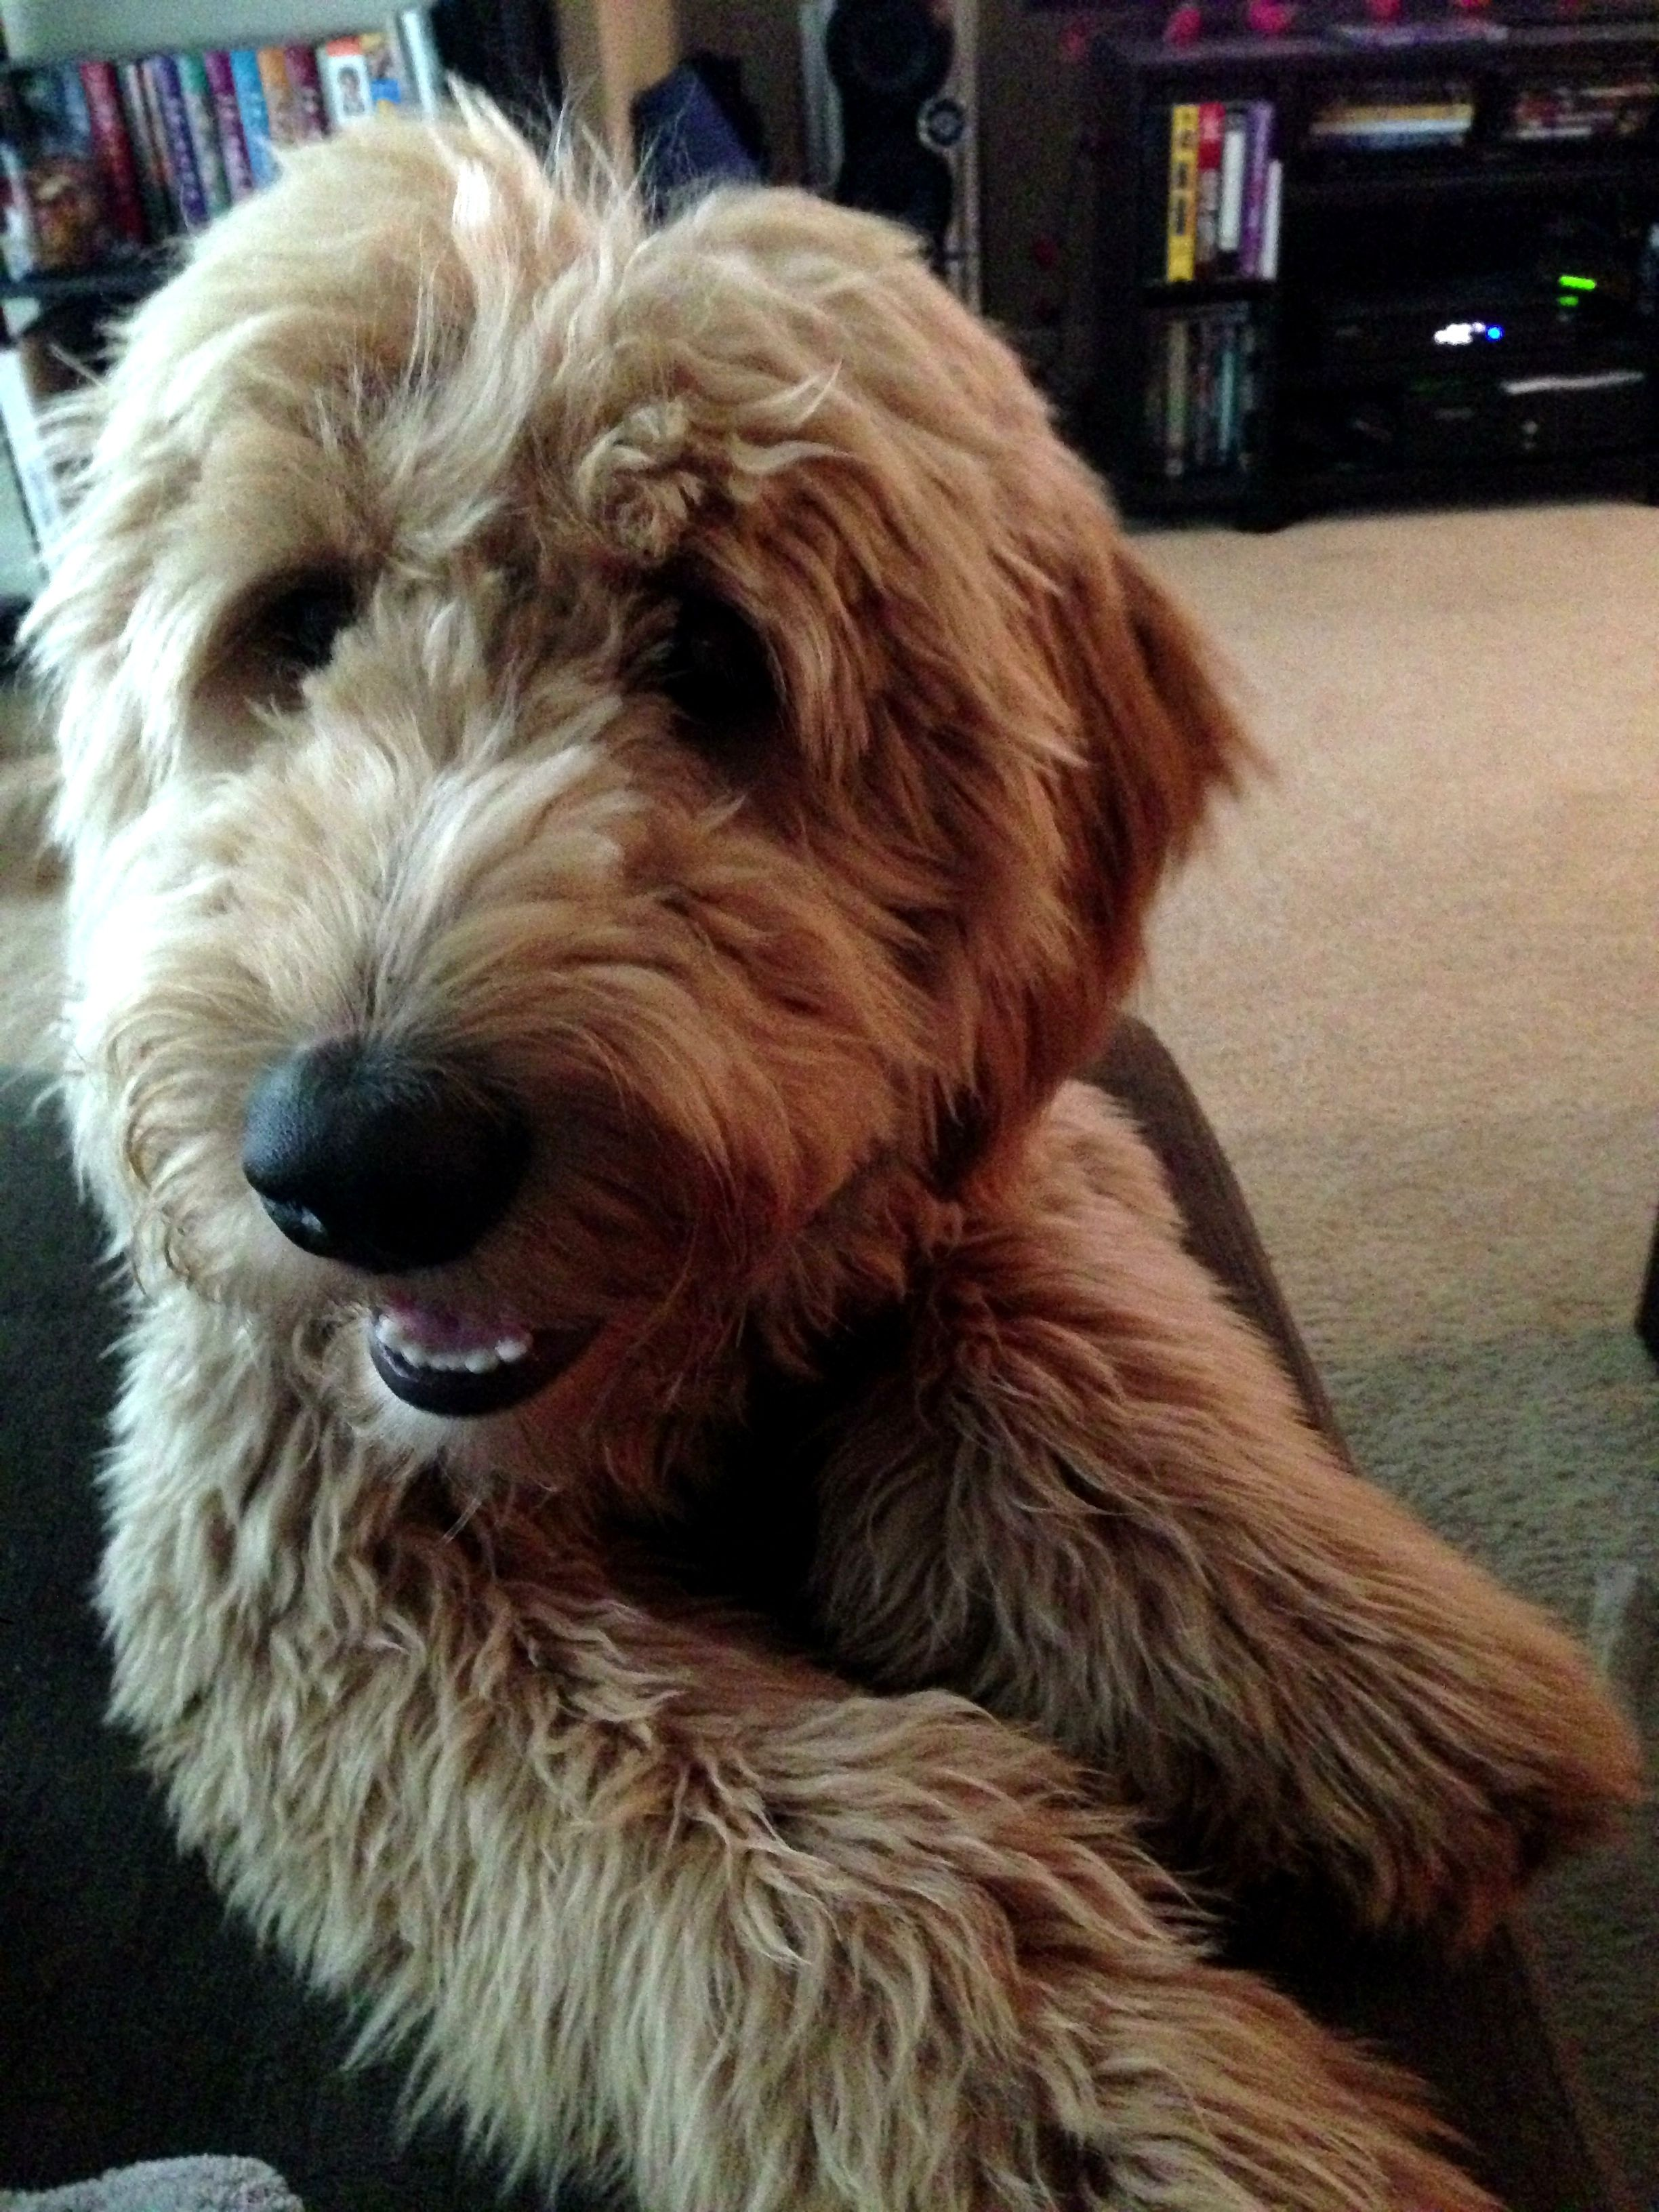 I want a golden doodle so badly. Look he's smiling